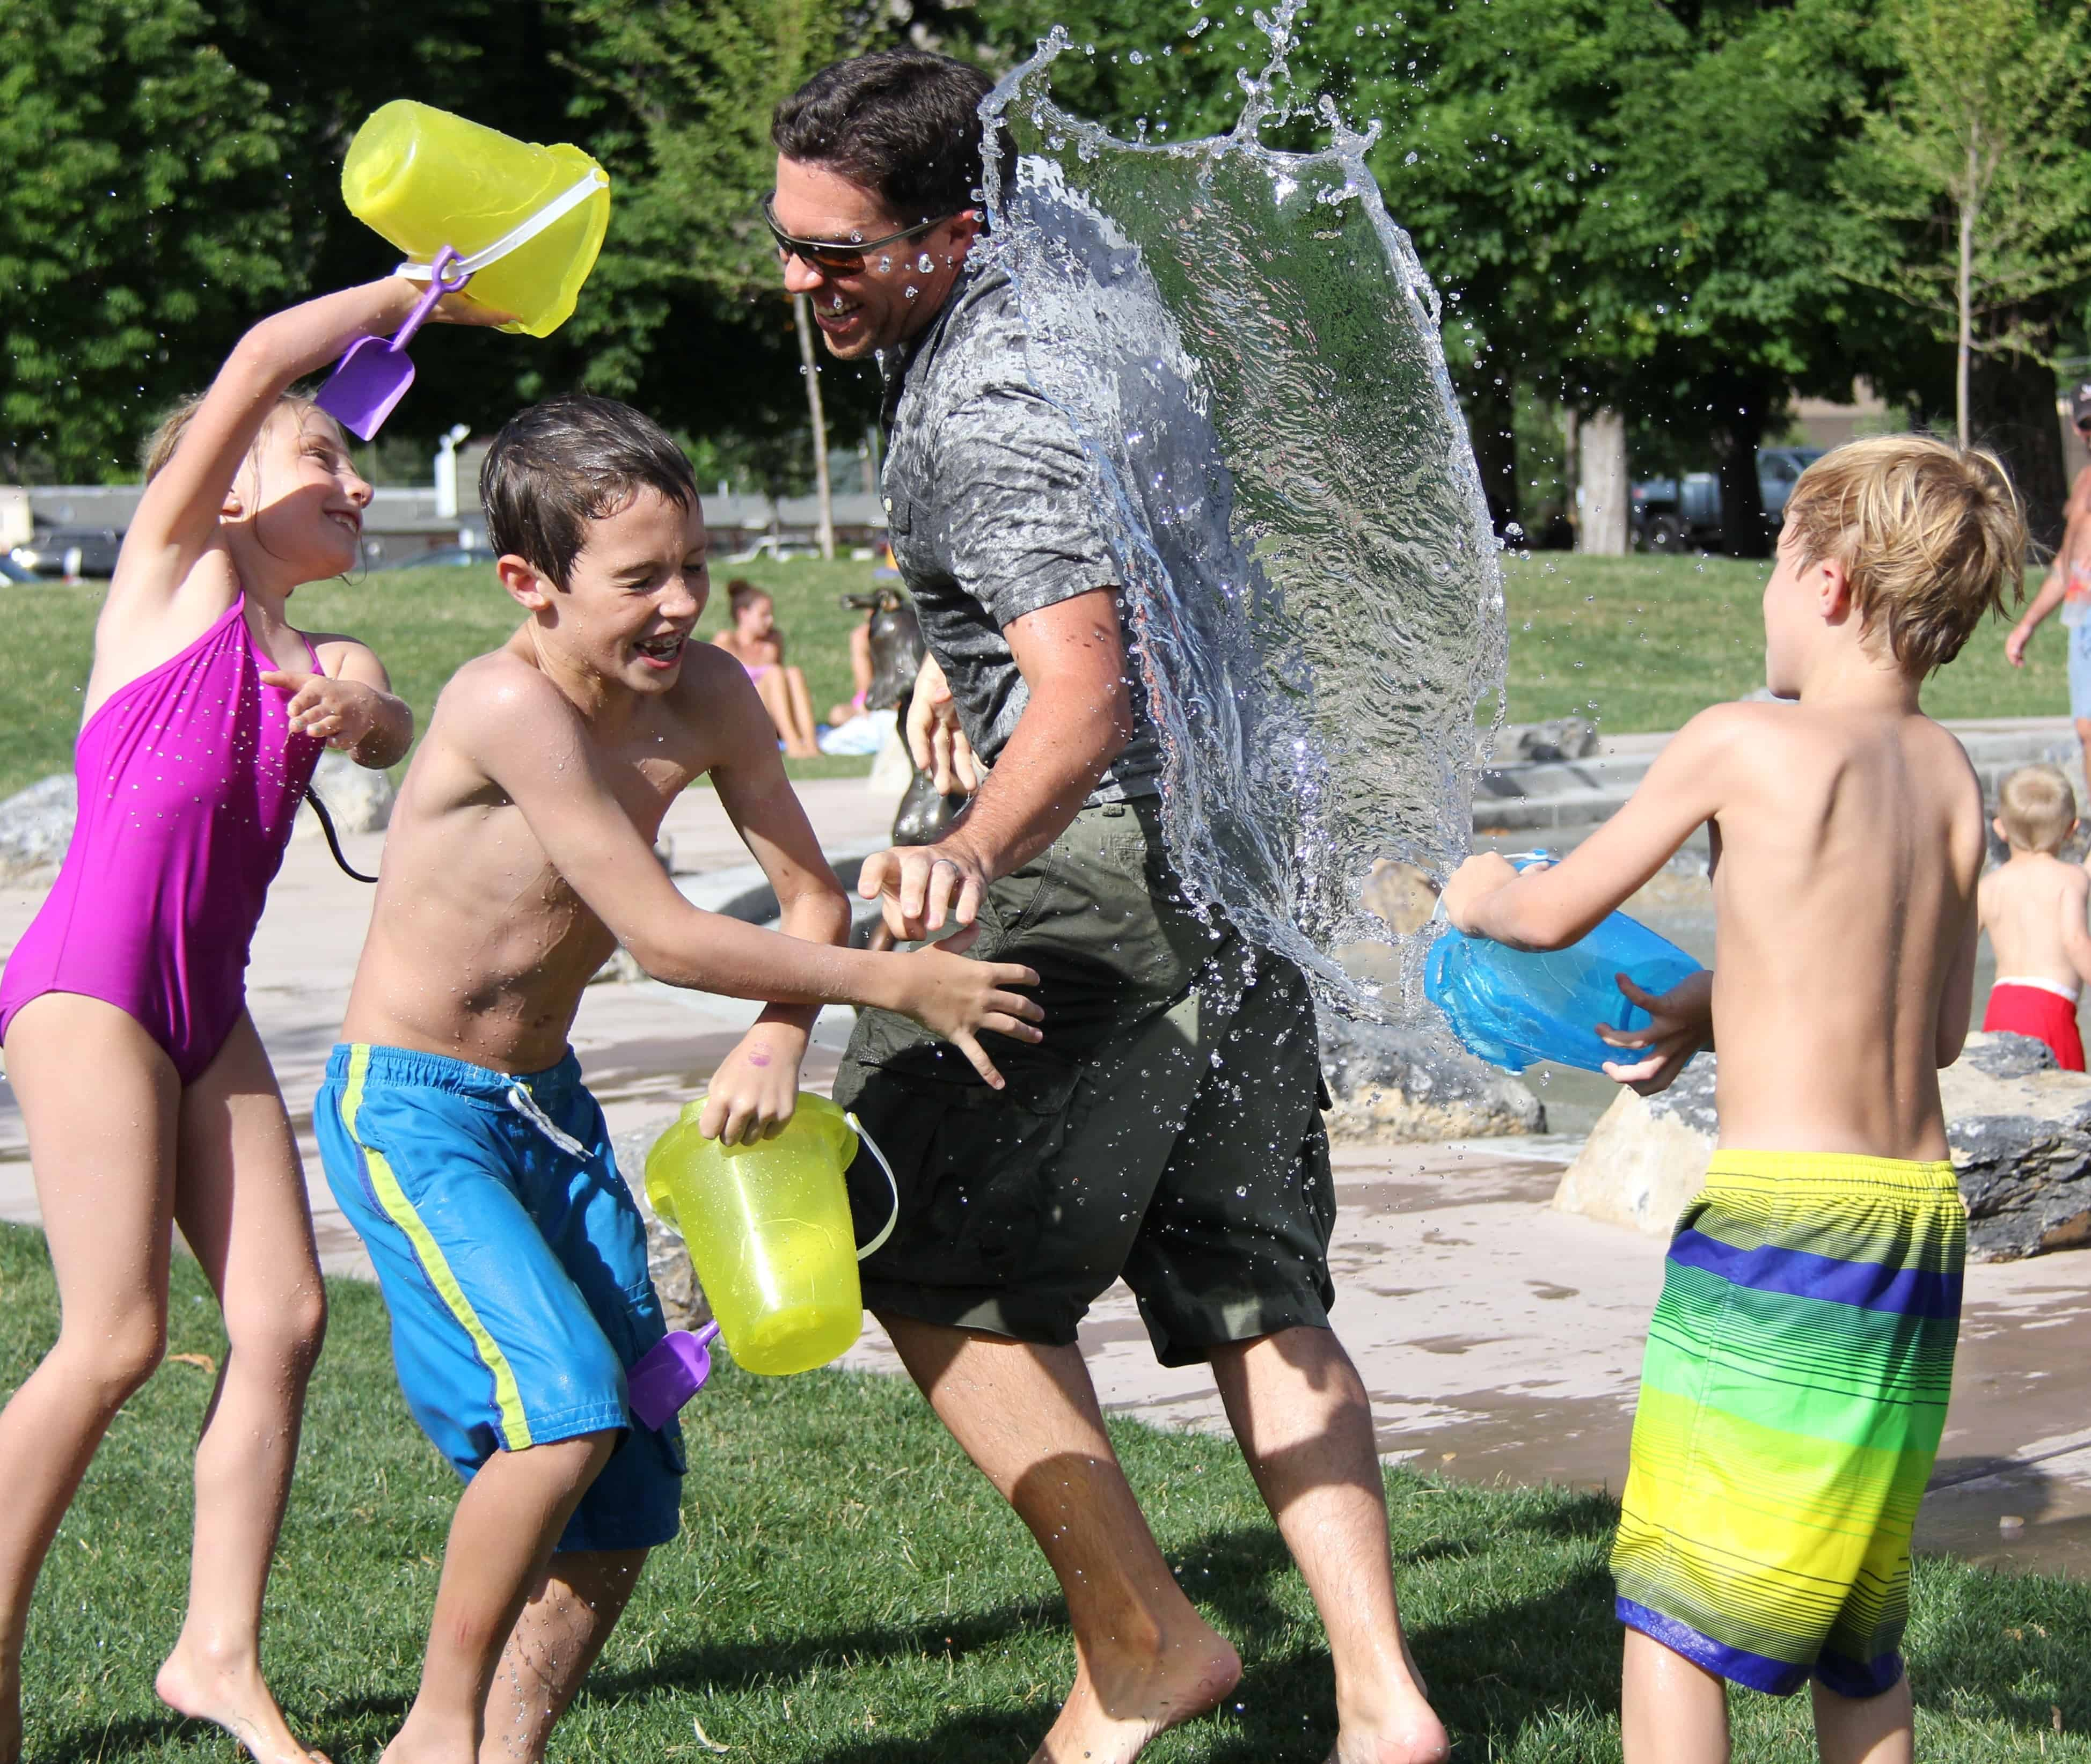 Dad water fight with kids